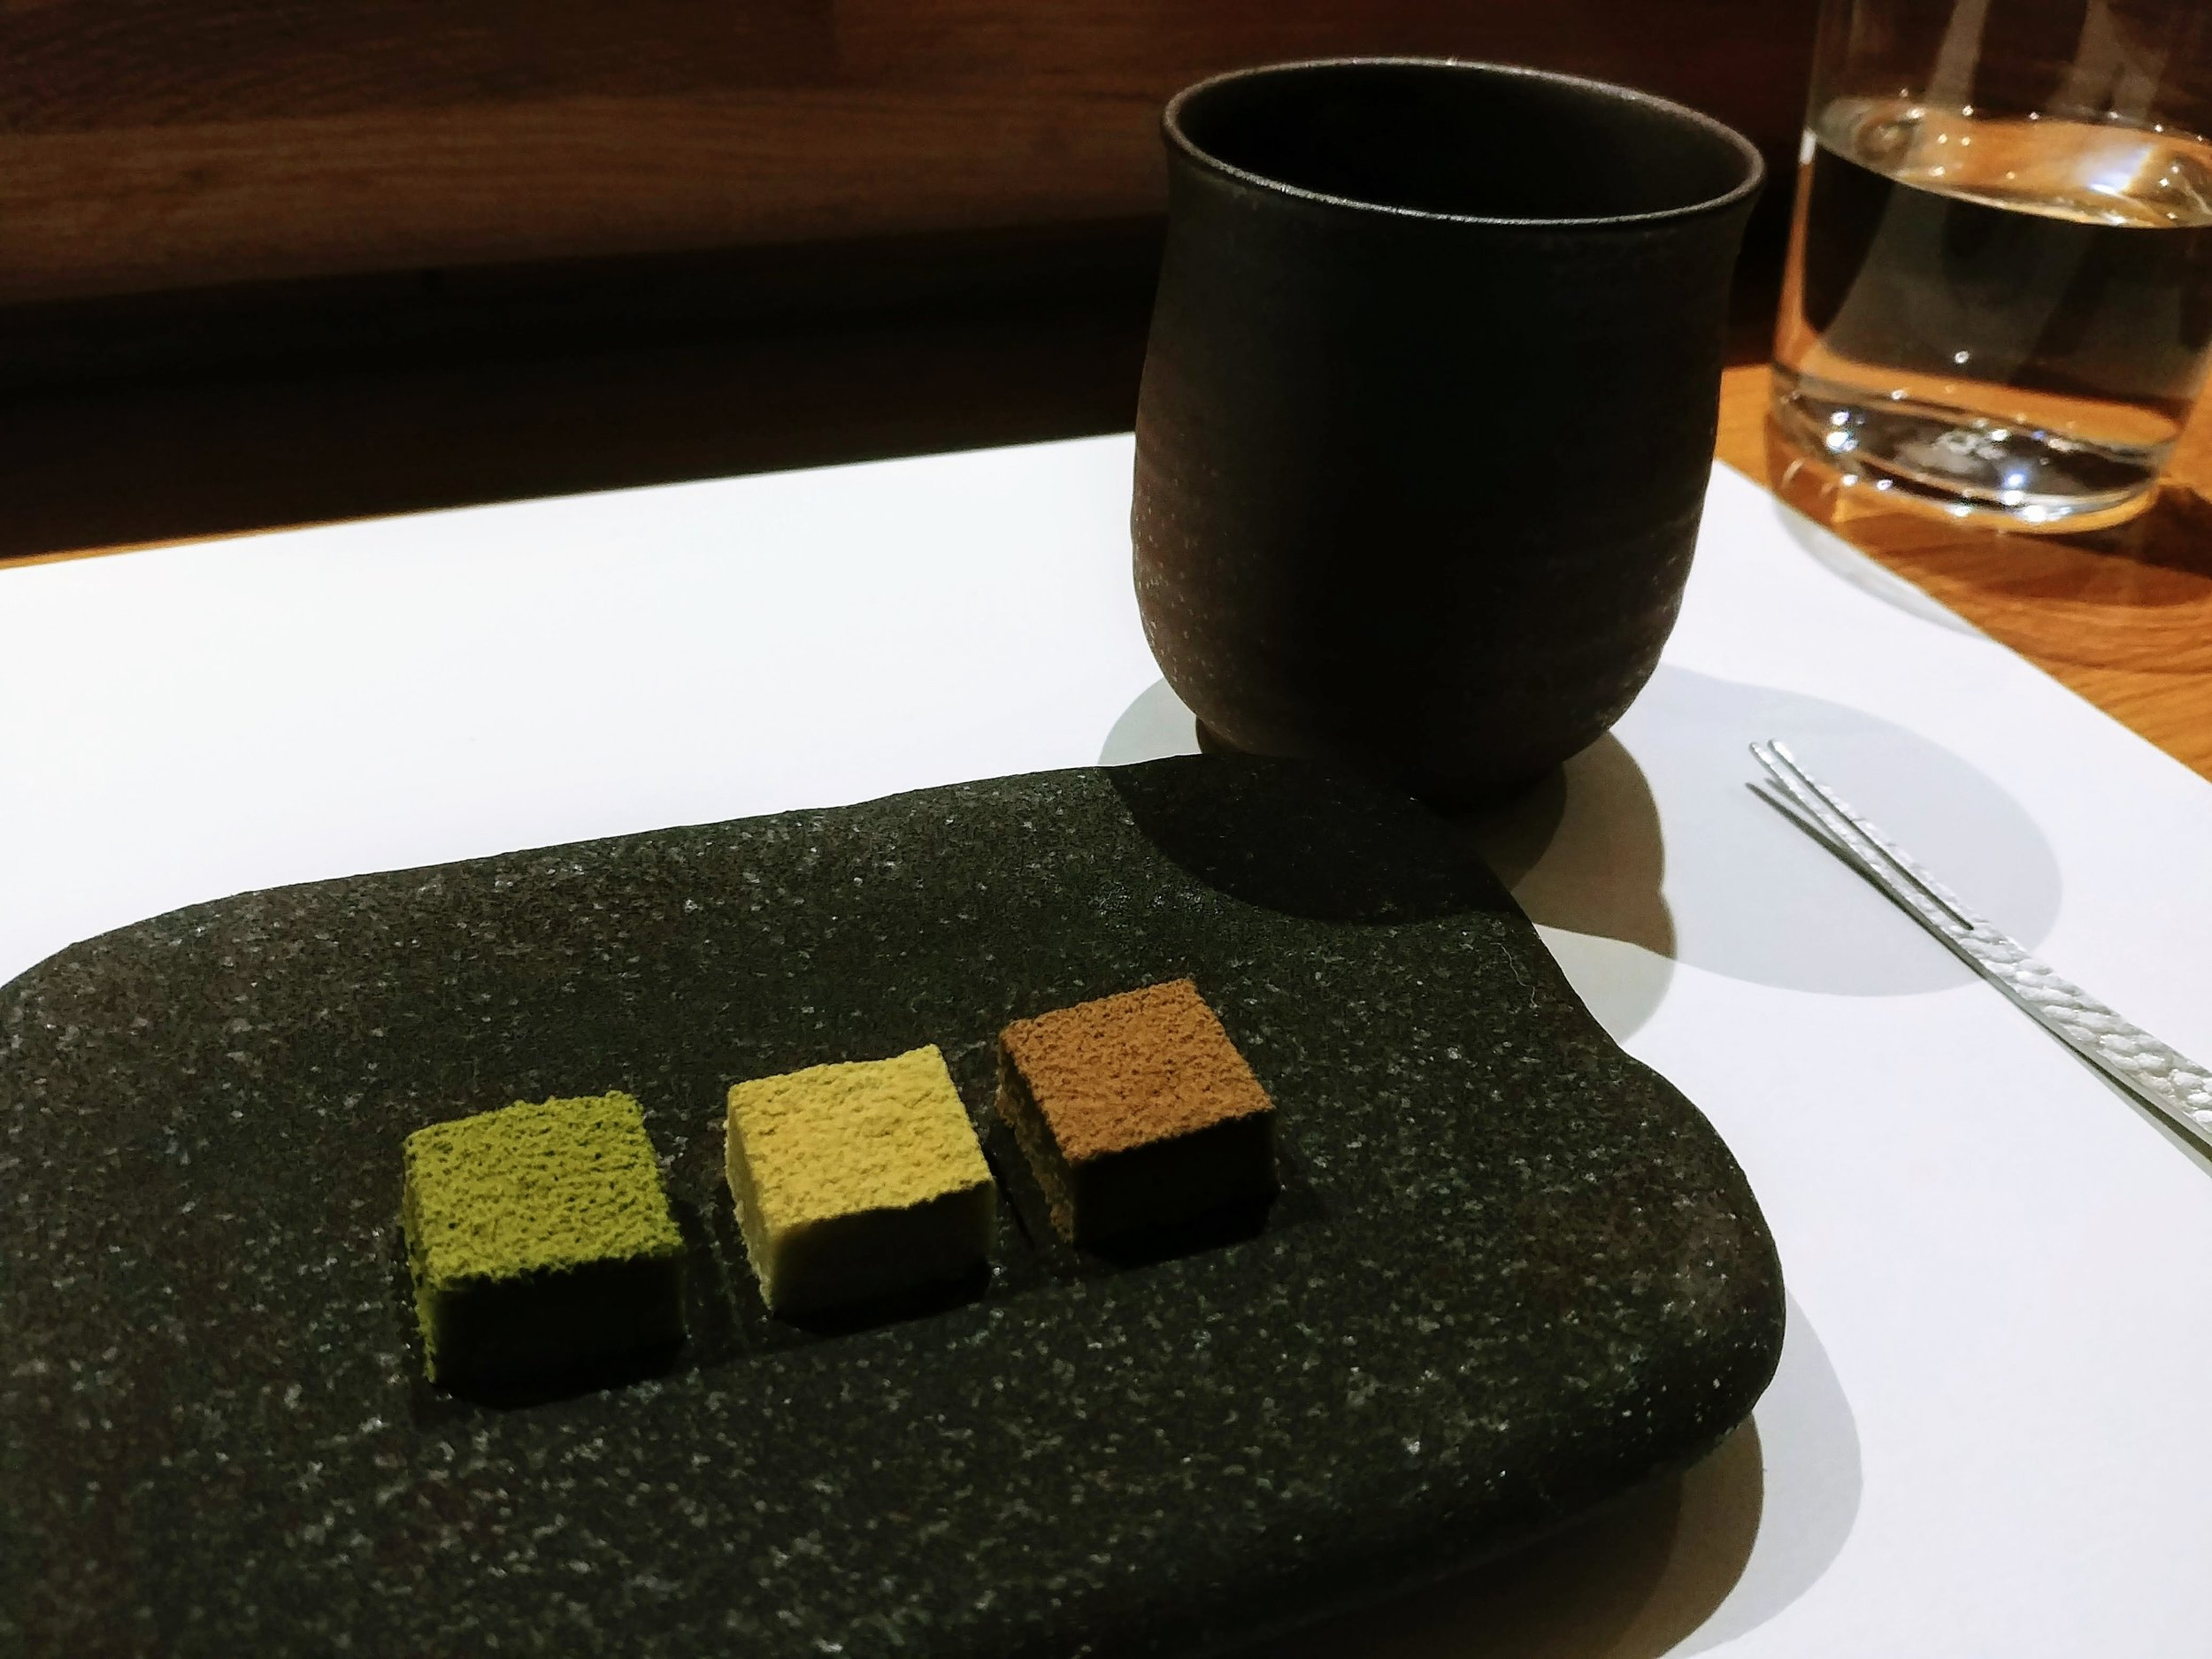 Trio of dessert (matcha/green tea, genmaicha and toasted tea) accompanied by a hot cup of tea - I have to comment that this is the best dessert I have ever tried among all of the sushi omakase experiences even in Japan. It certainly delivers the best ending to a fantastic meal with impactful flavours of tea in different variety. They are sweet yet gentle with slight bitter undertones. If you are a fan of tea, you will go crazy over these little cubes of joy #mytopfavourites